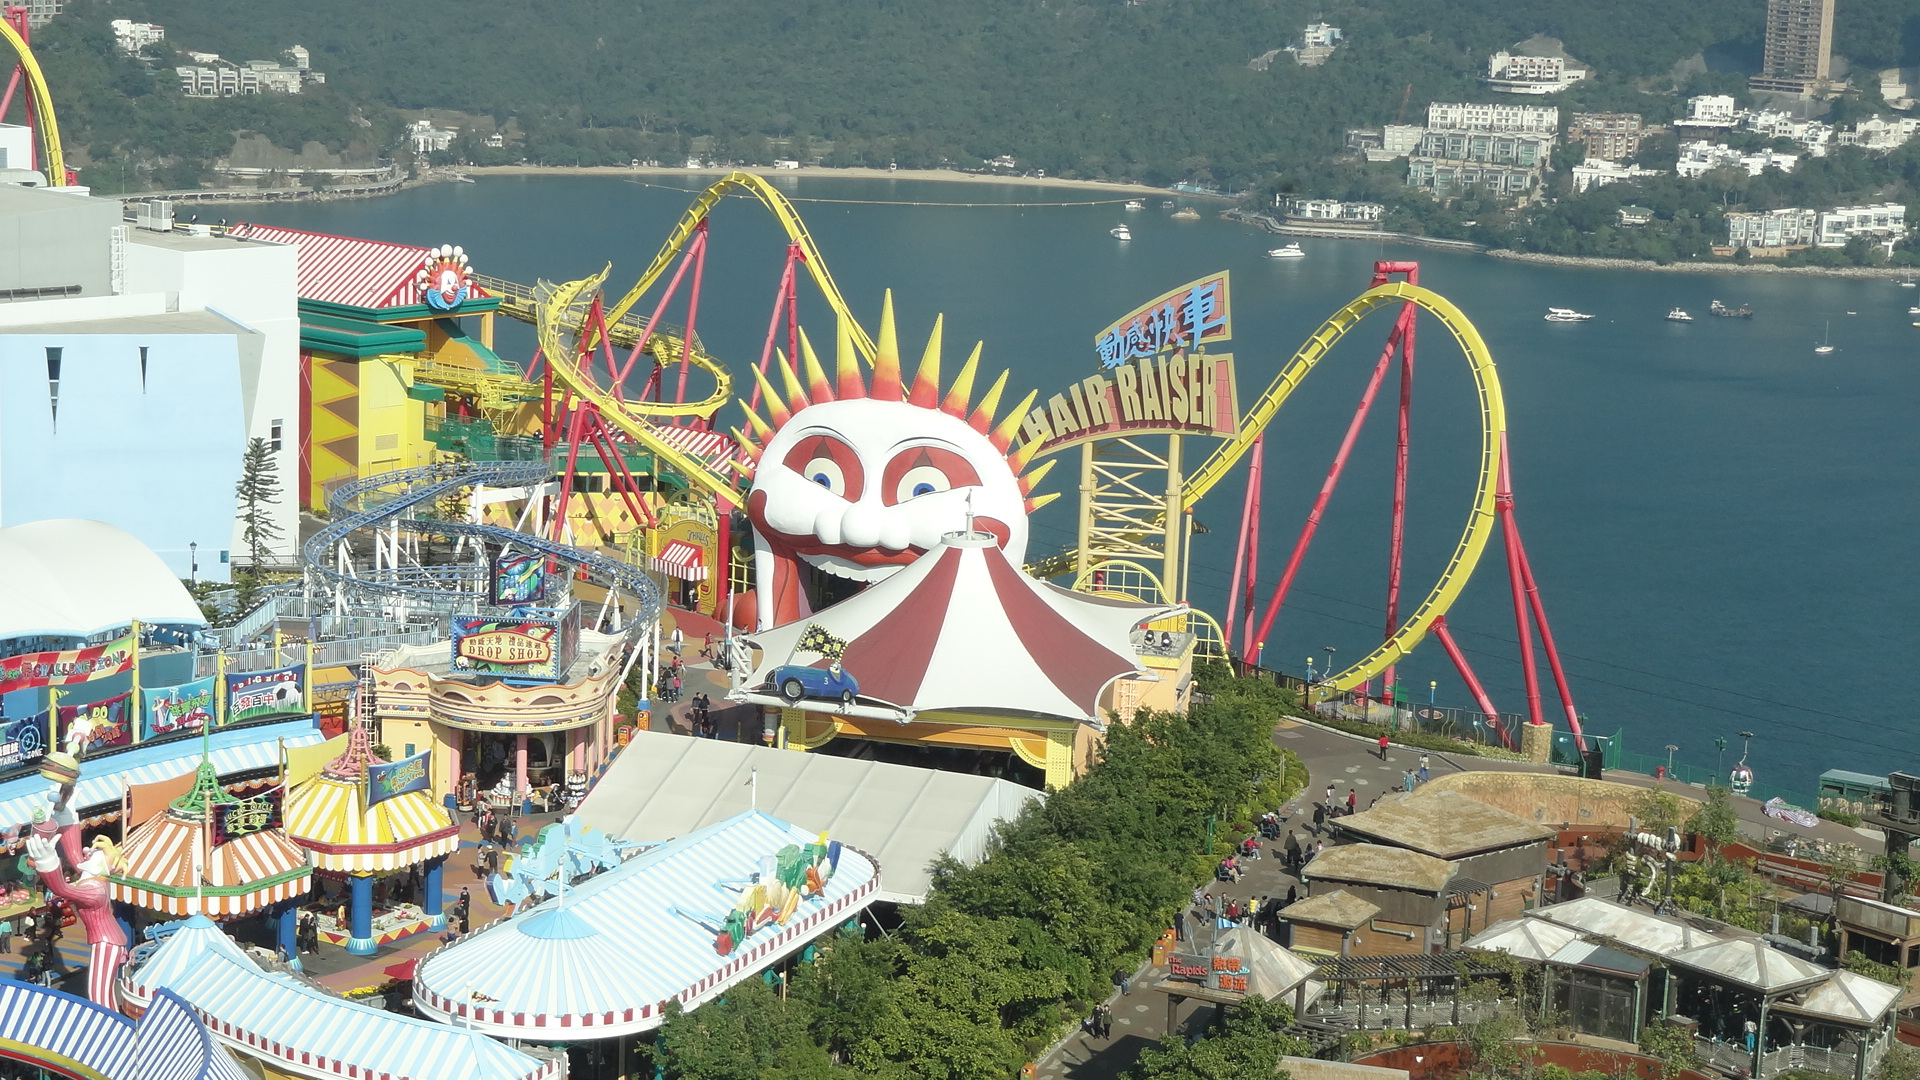 Kick the adrenaline into high gear on the roller coasters of Thrill Mountain